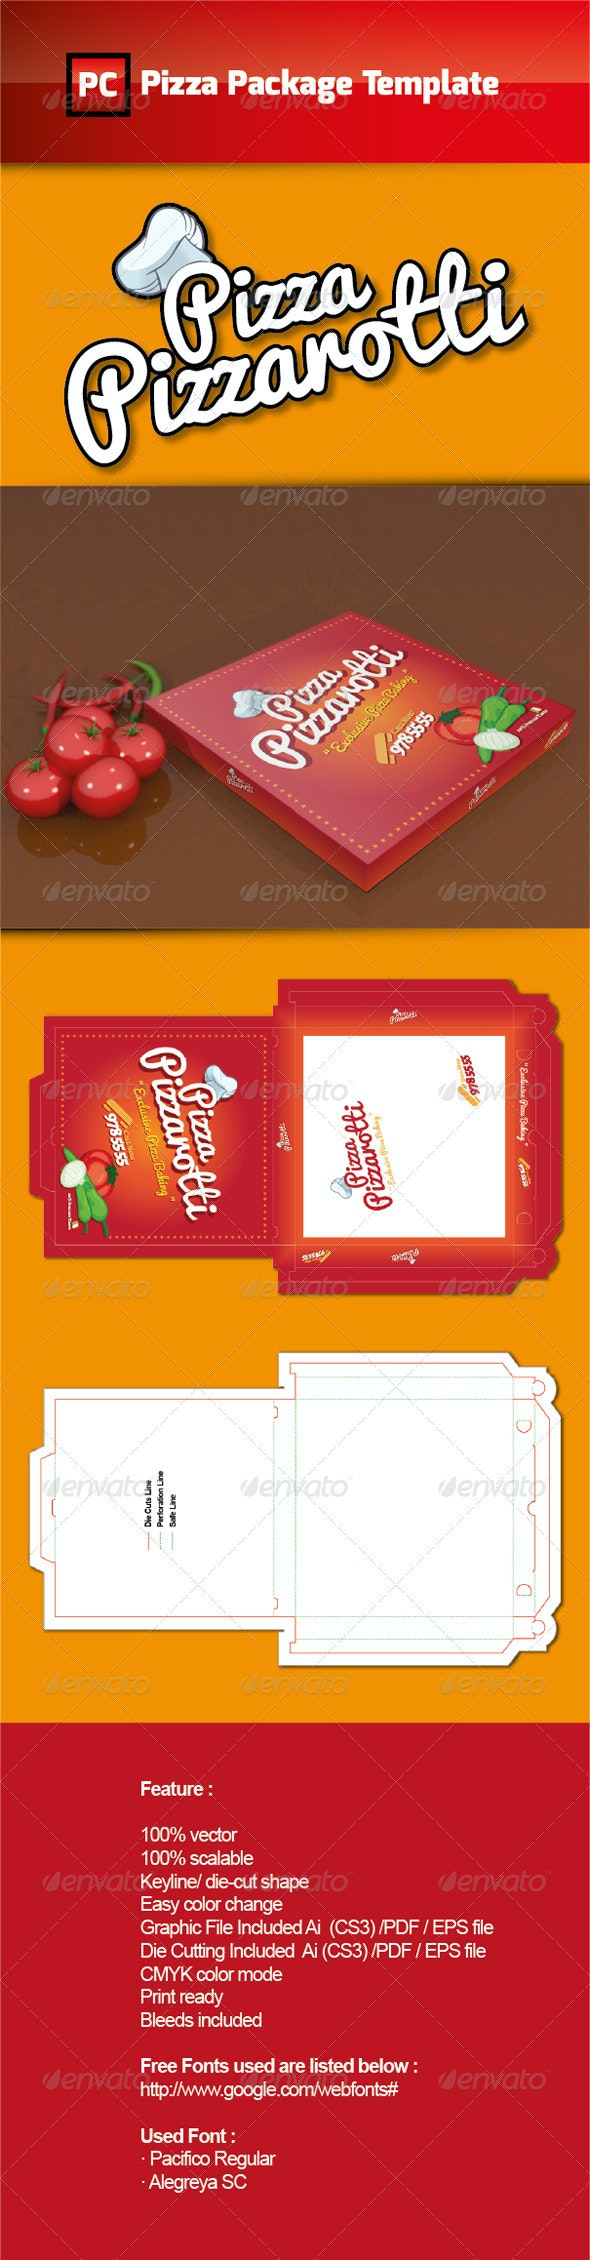 Pizza Package Template Vector - Packaging Print Templates